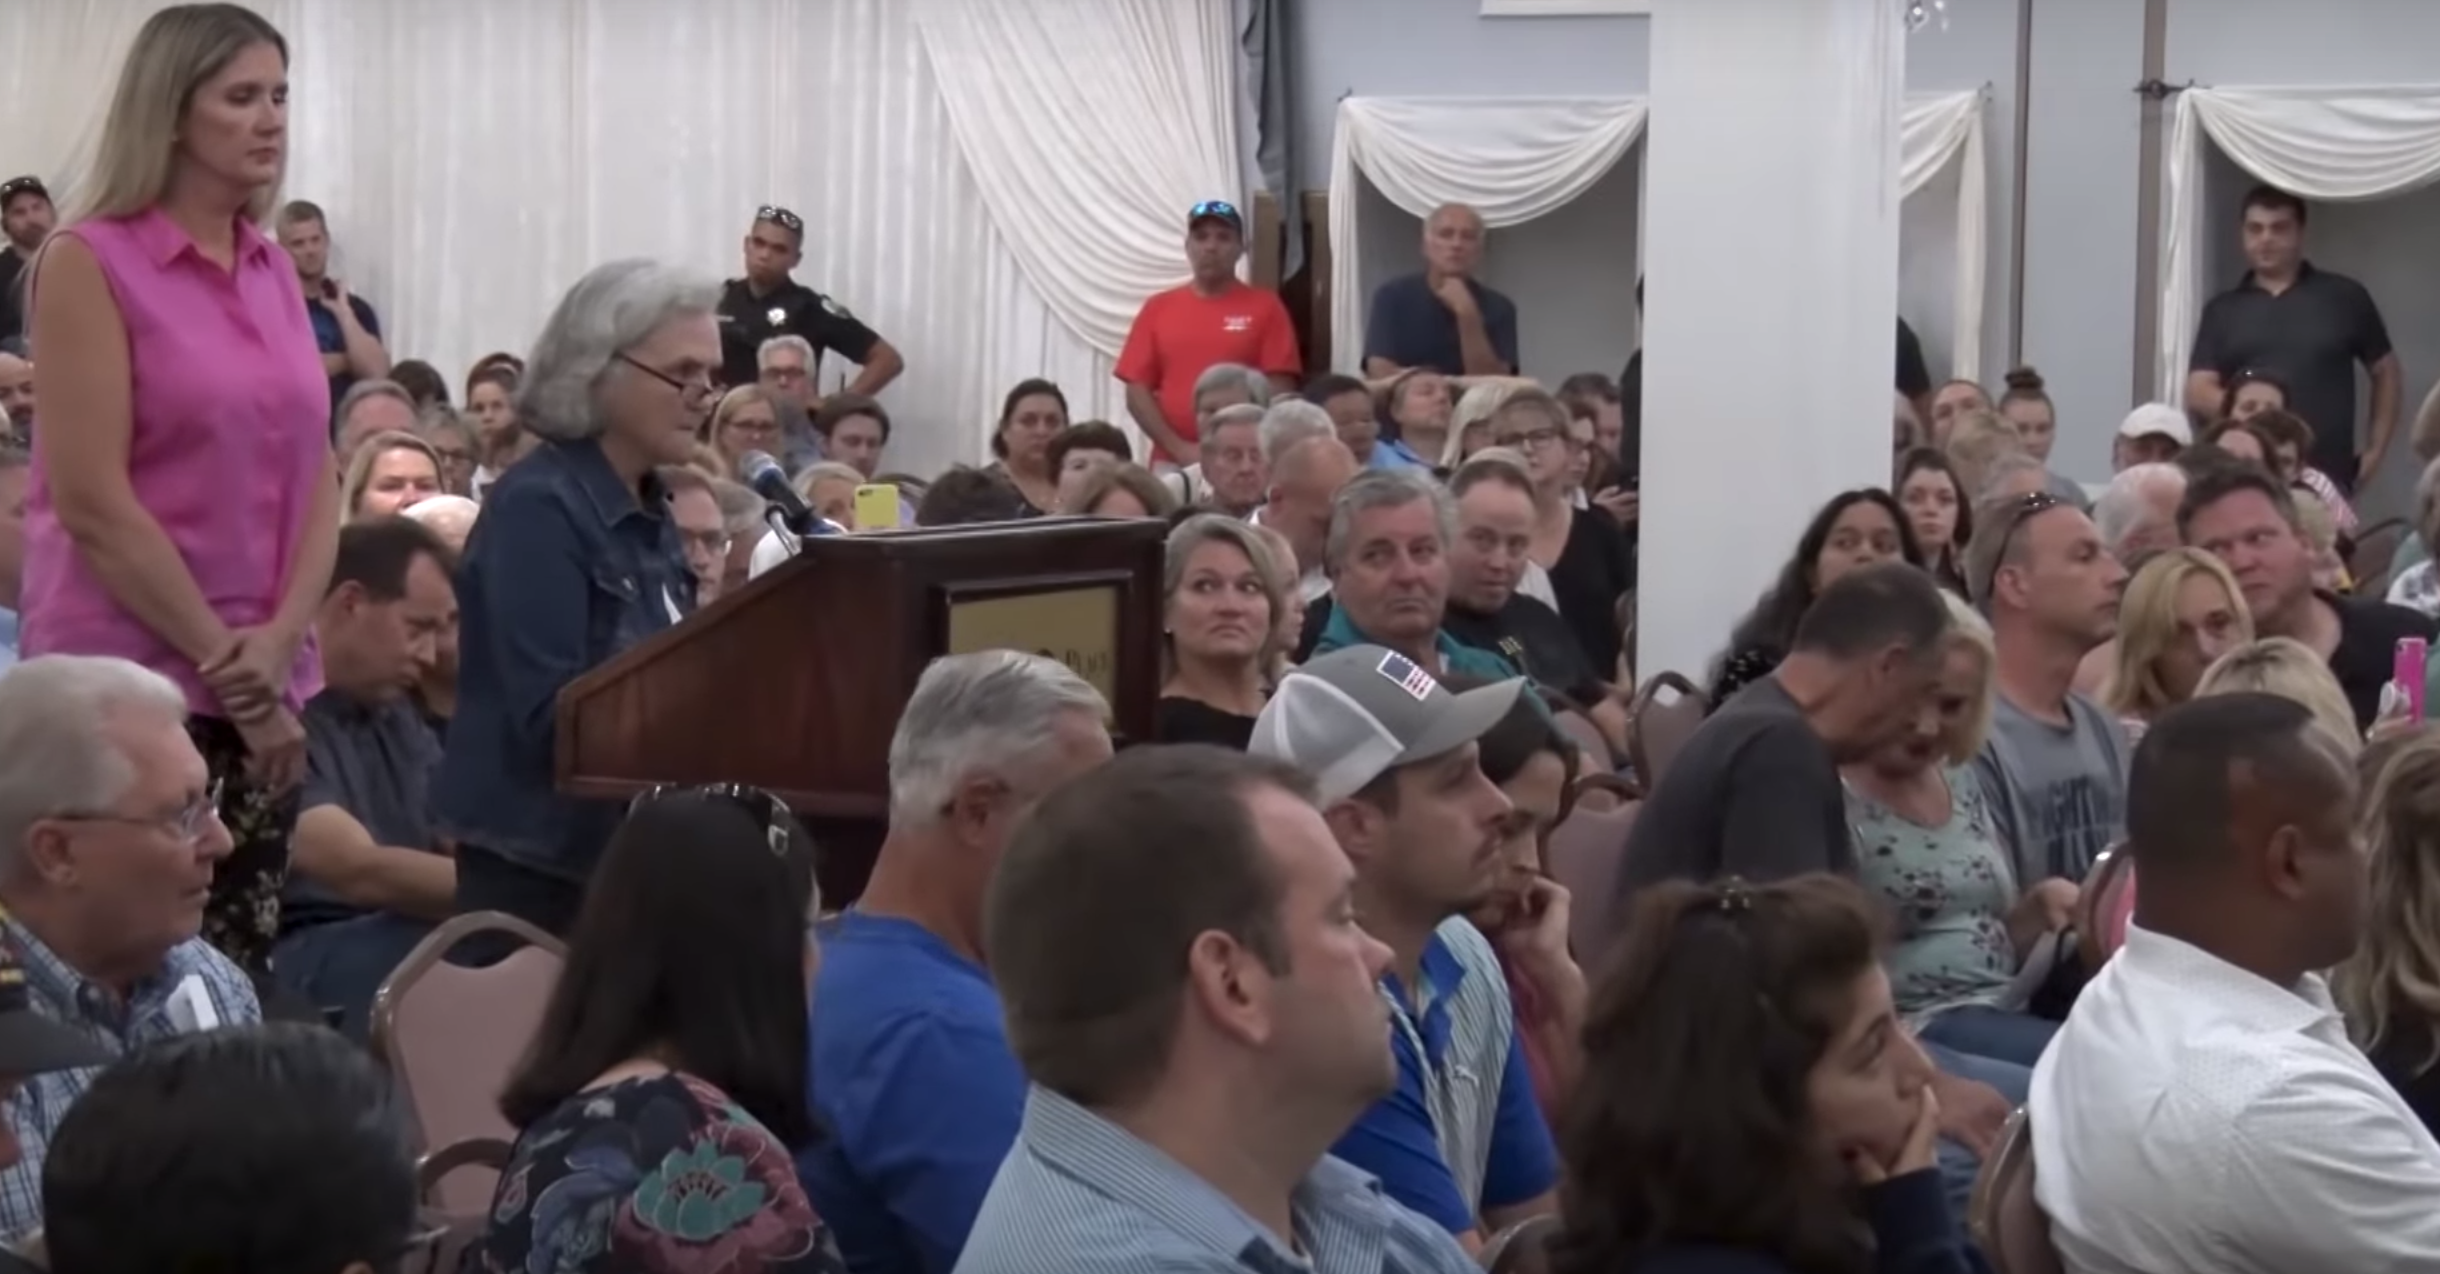 An Aug. 29 EPA town hall in Willowbrook over its claim that unsafe levels of a chemical were in the community's air. The EPA announced Wednesday that it botched the measurements and its report was false.